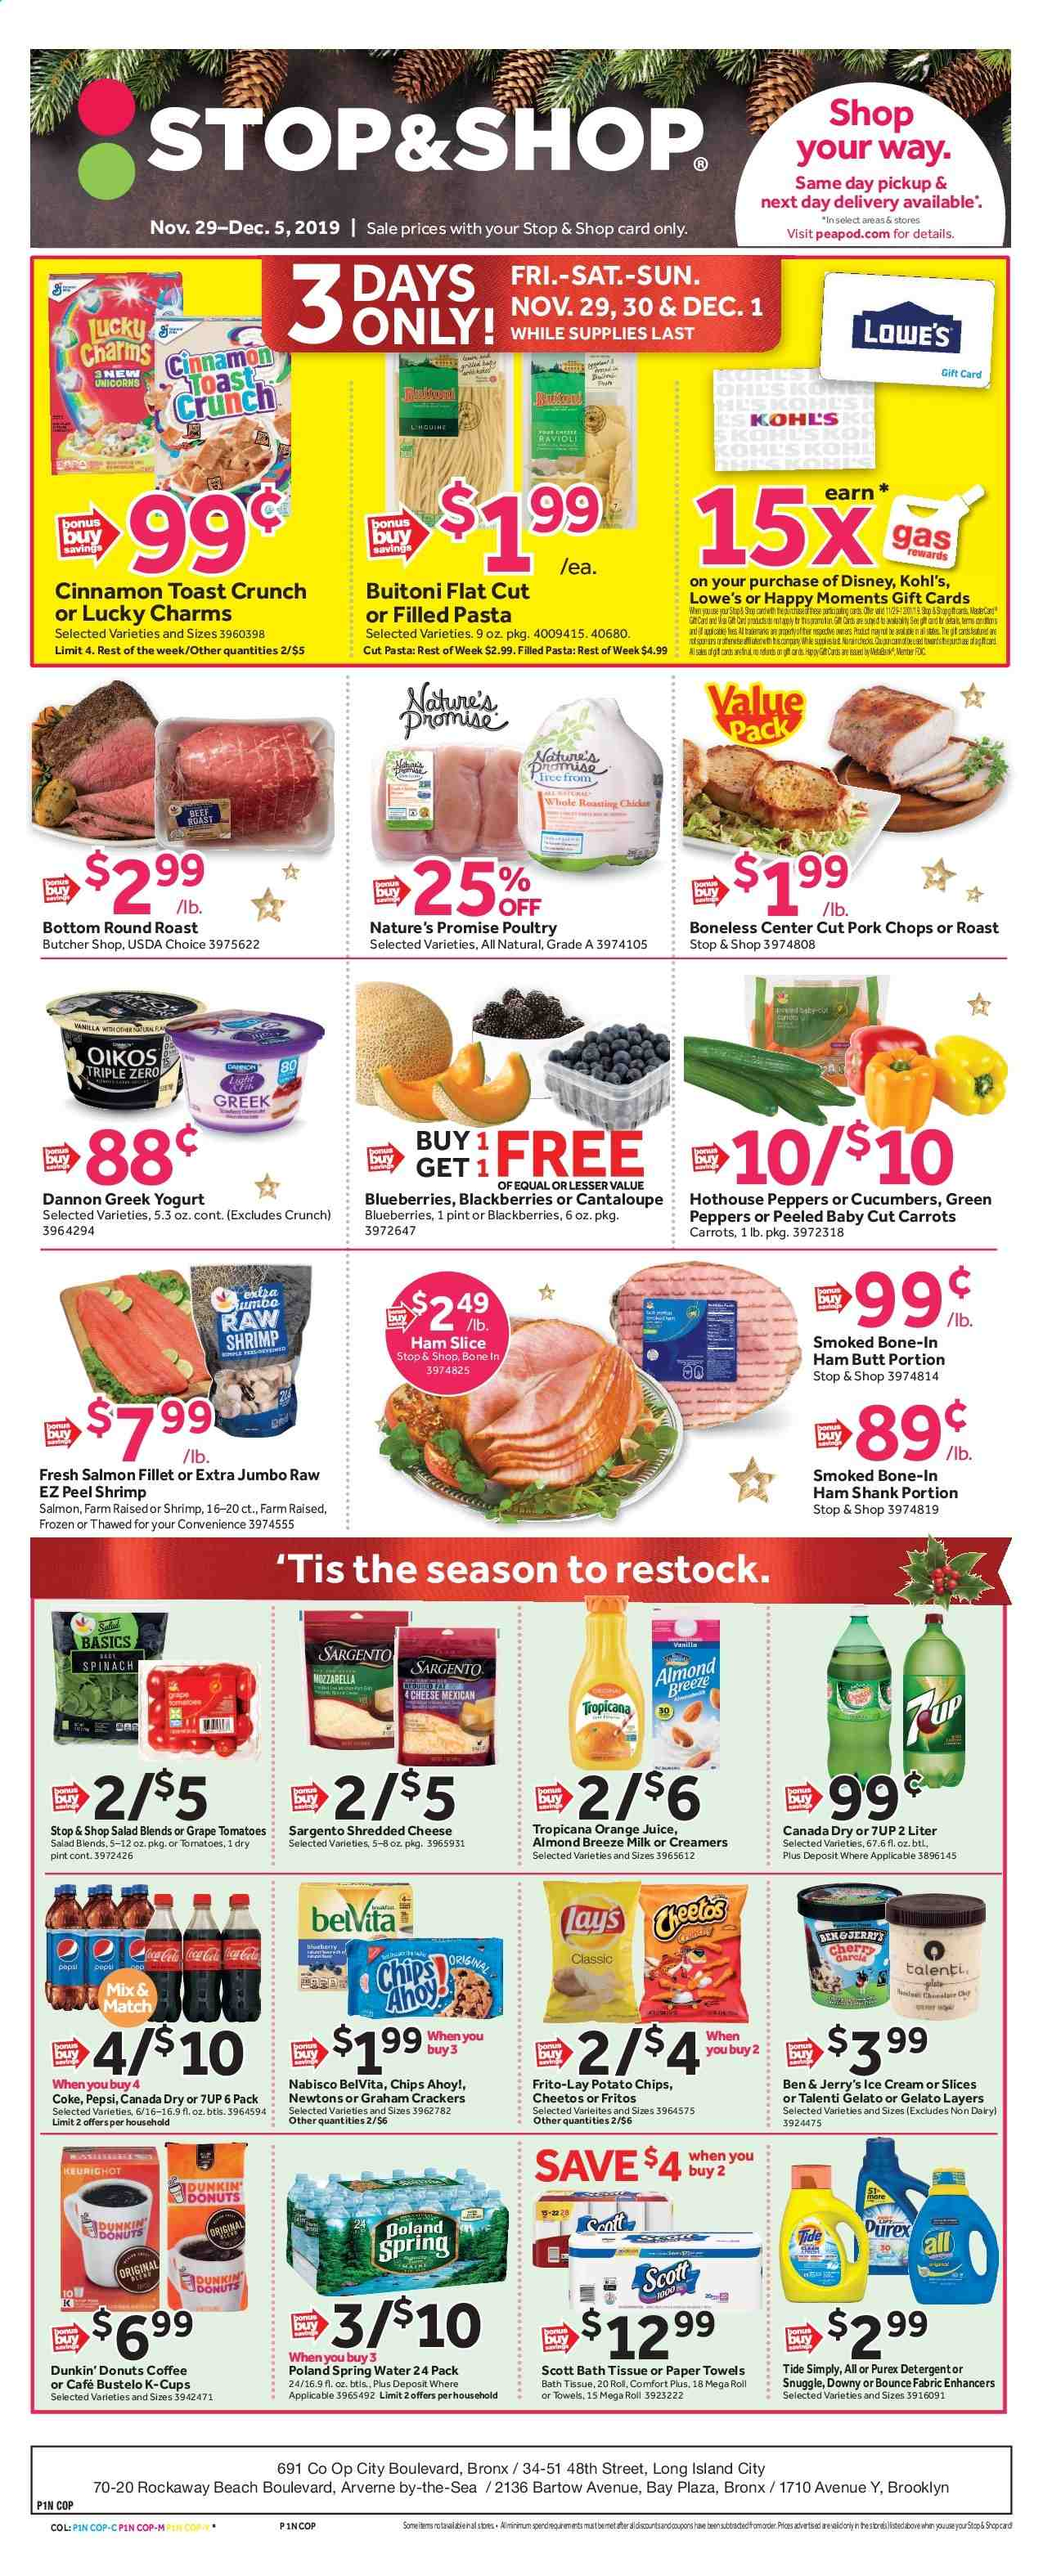 Stop & Shop Flyer  - 11.29.2019 - 12.05.2019. Page 1.